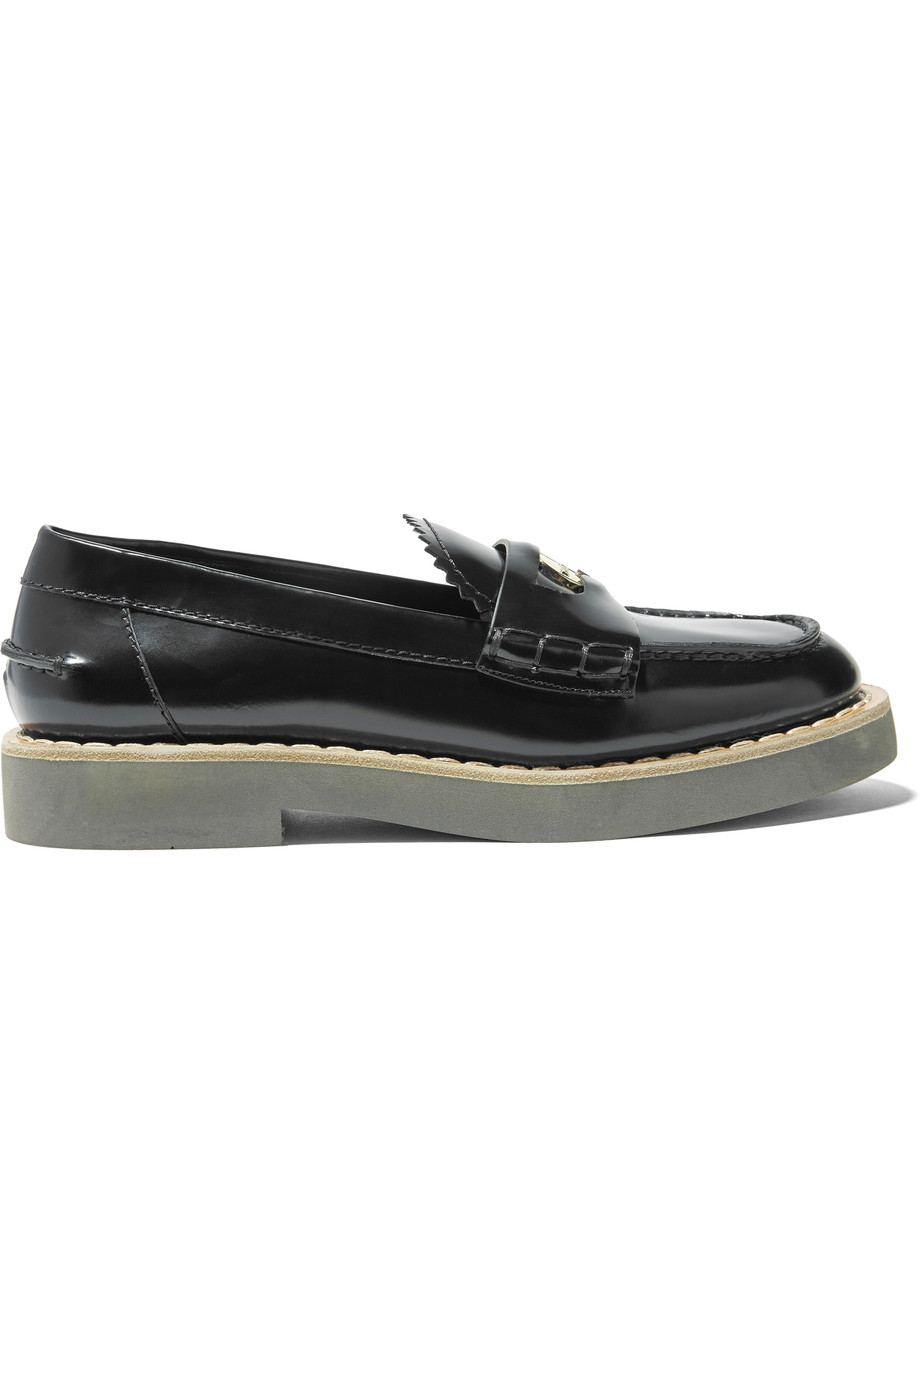 black miu miu loafers